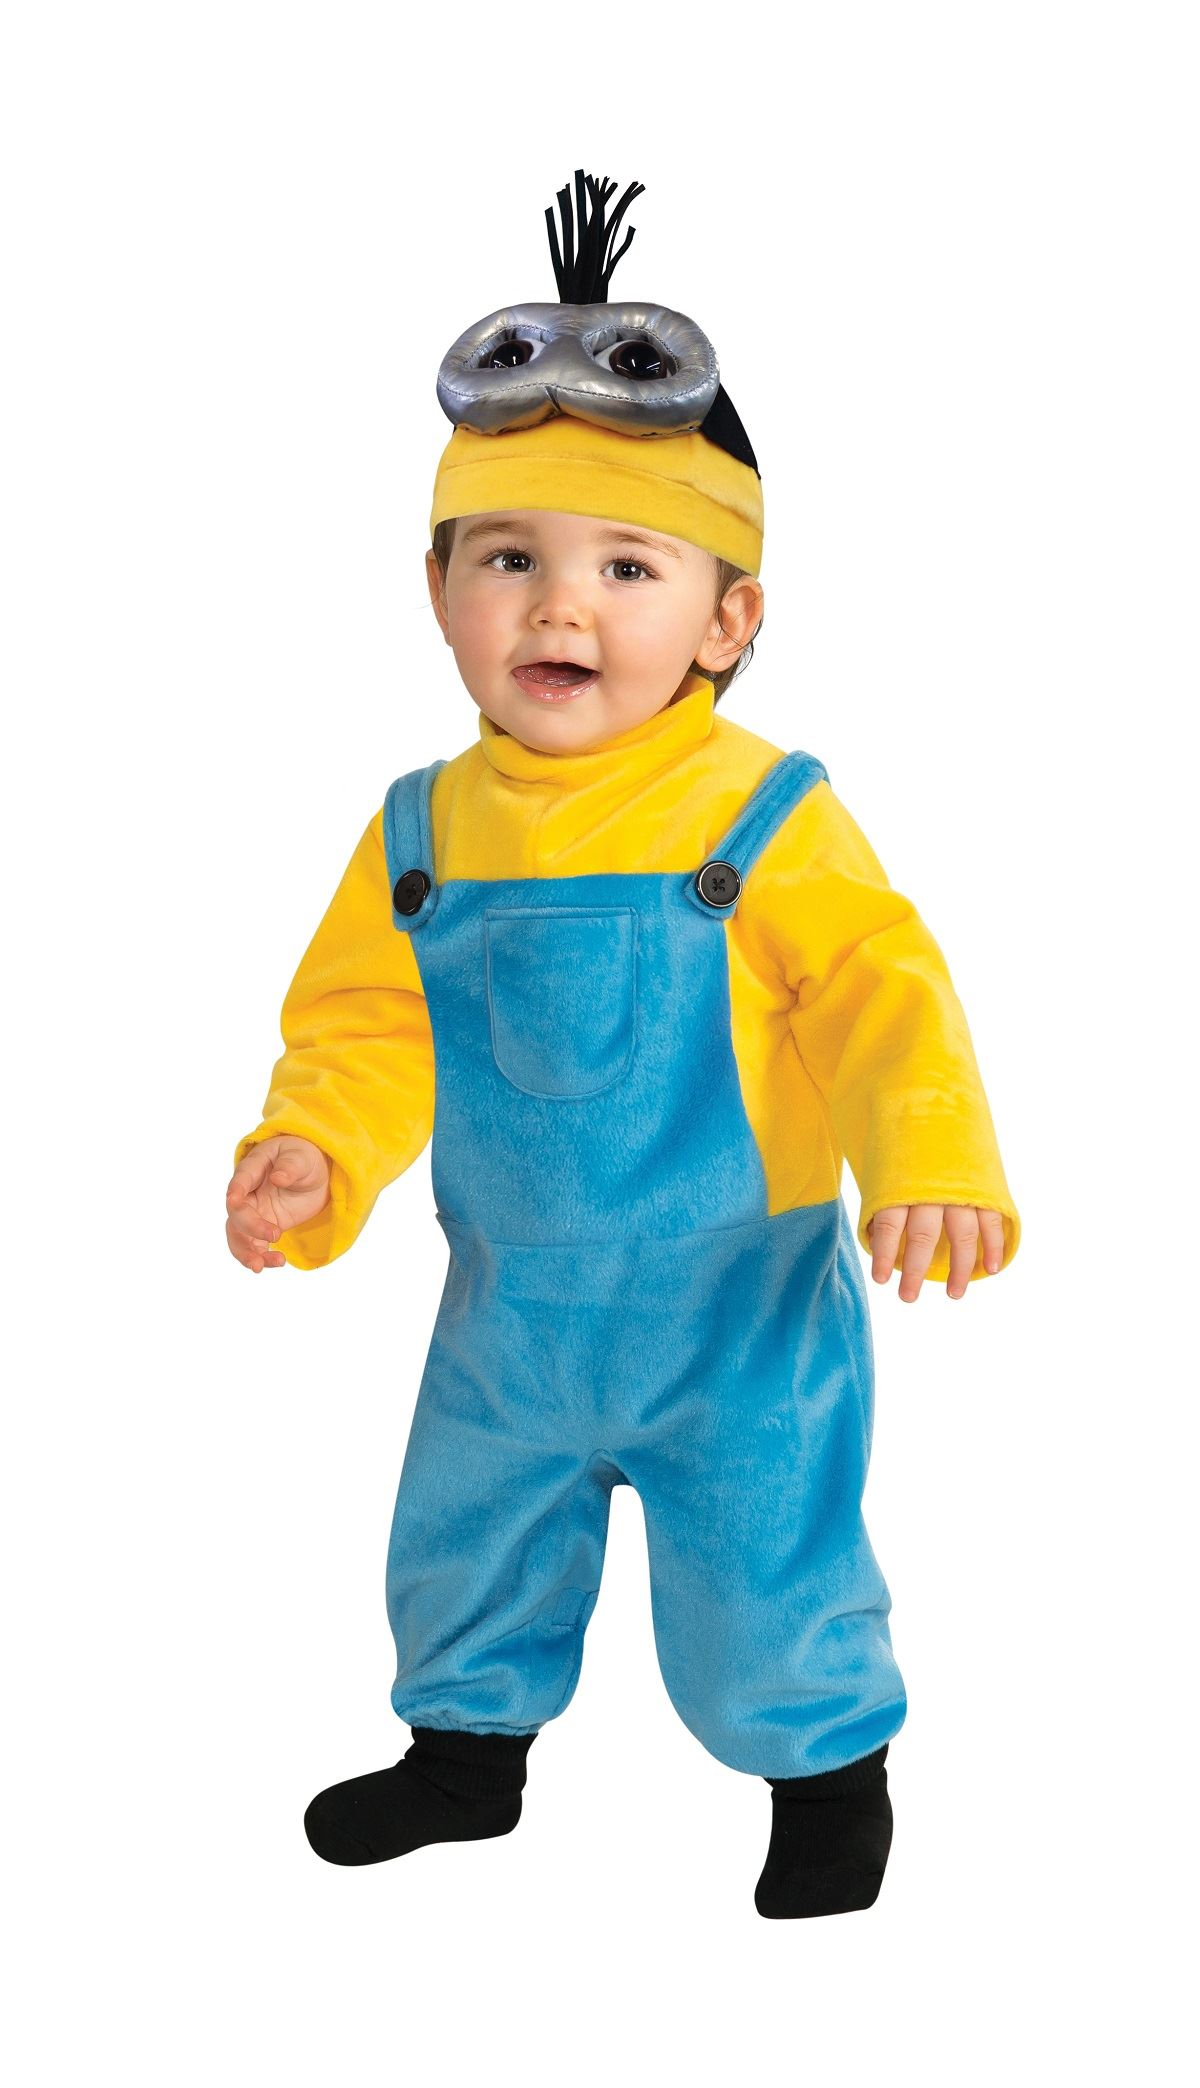 Kids Minion Kevin Toddler Costume   $22.99   The Costume Land